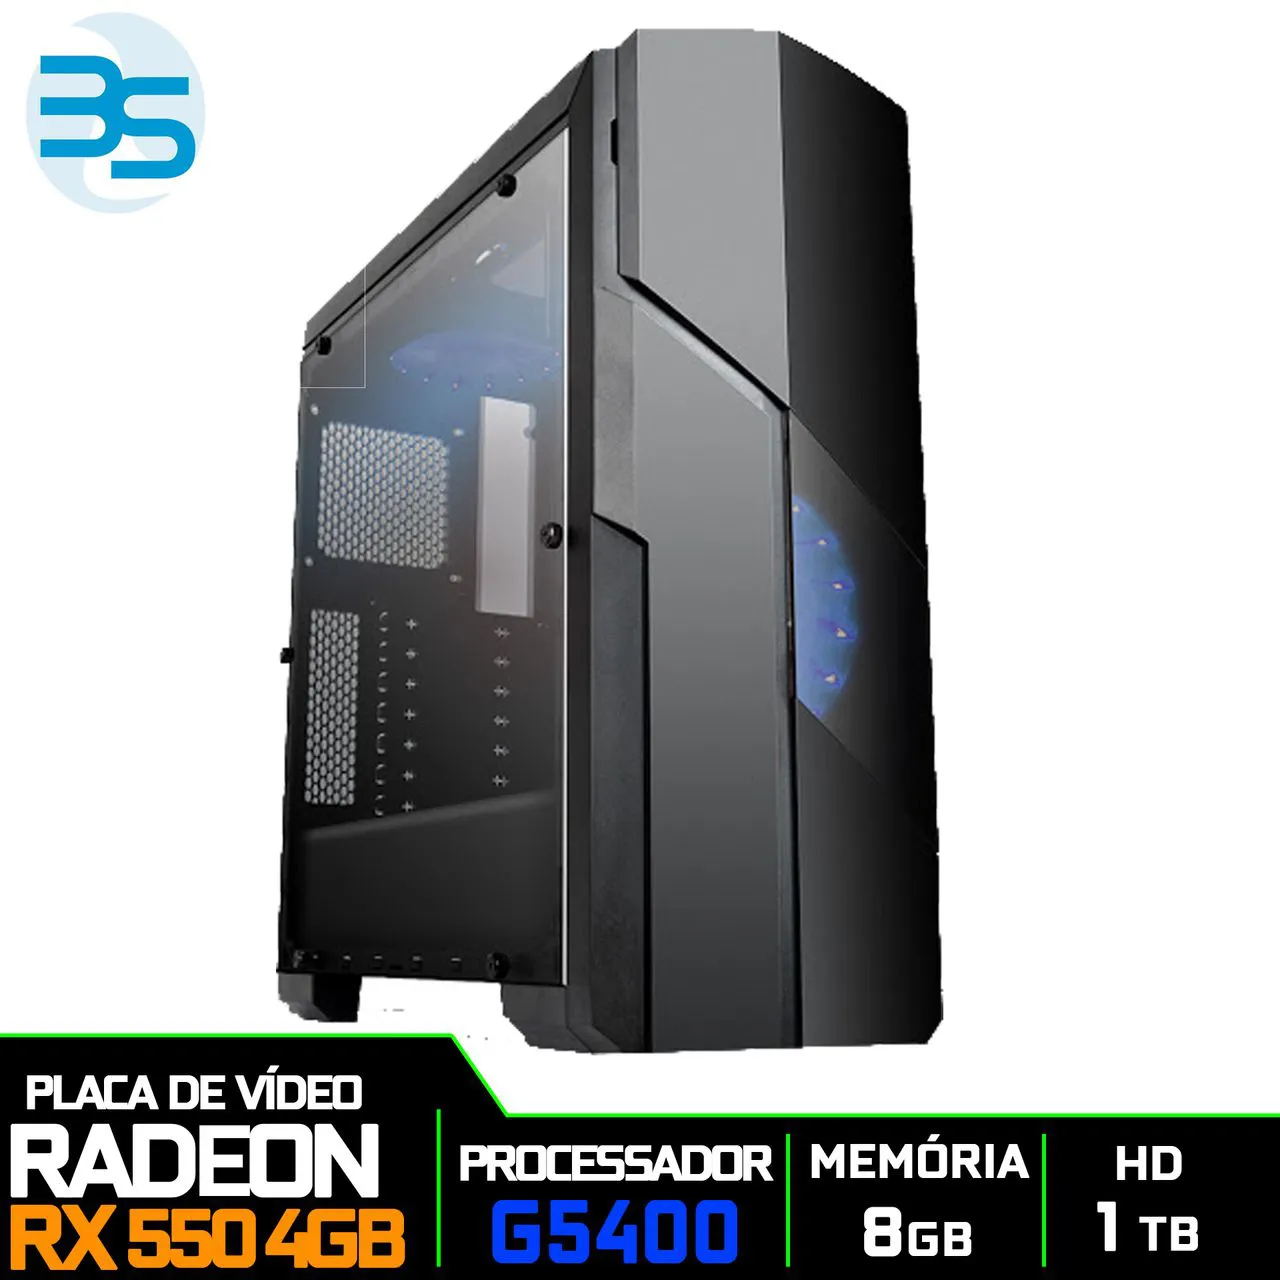 Computador Gamer Intel G5400 3.70GHZ 4MB, 8GB DDR4, HD 1TB, 400W, RX 550 4GB